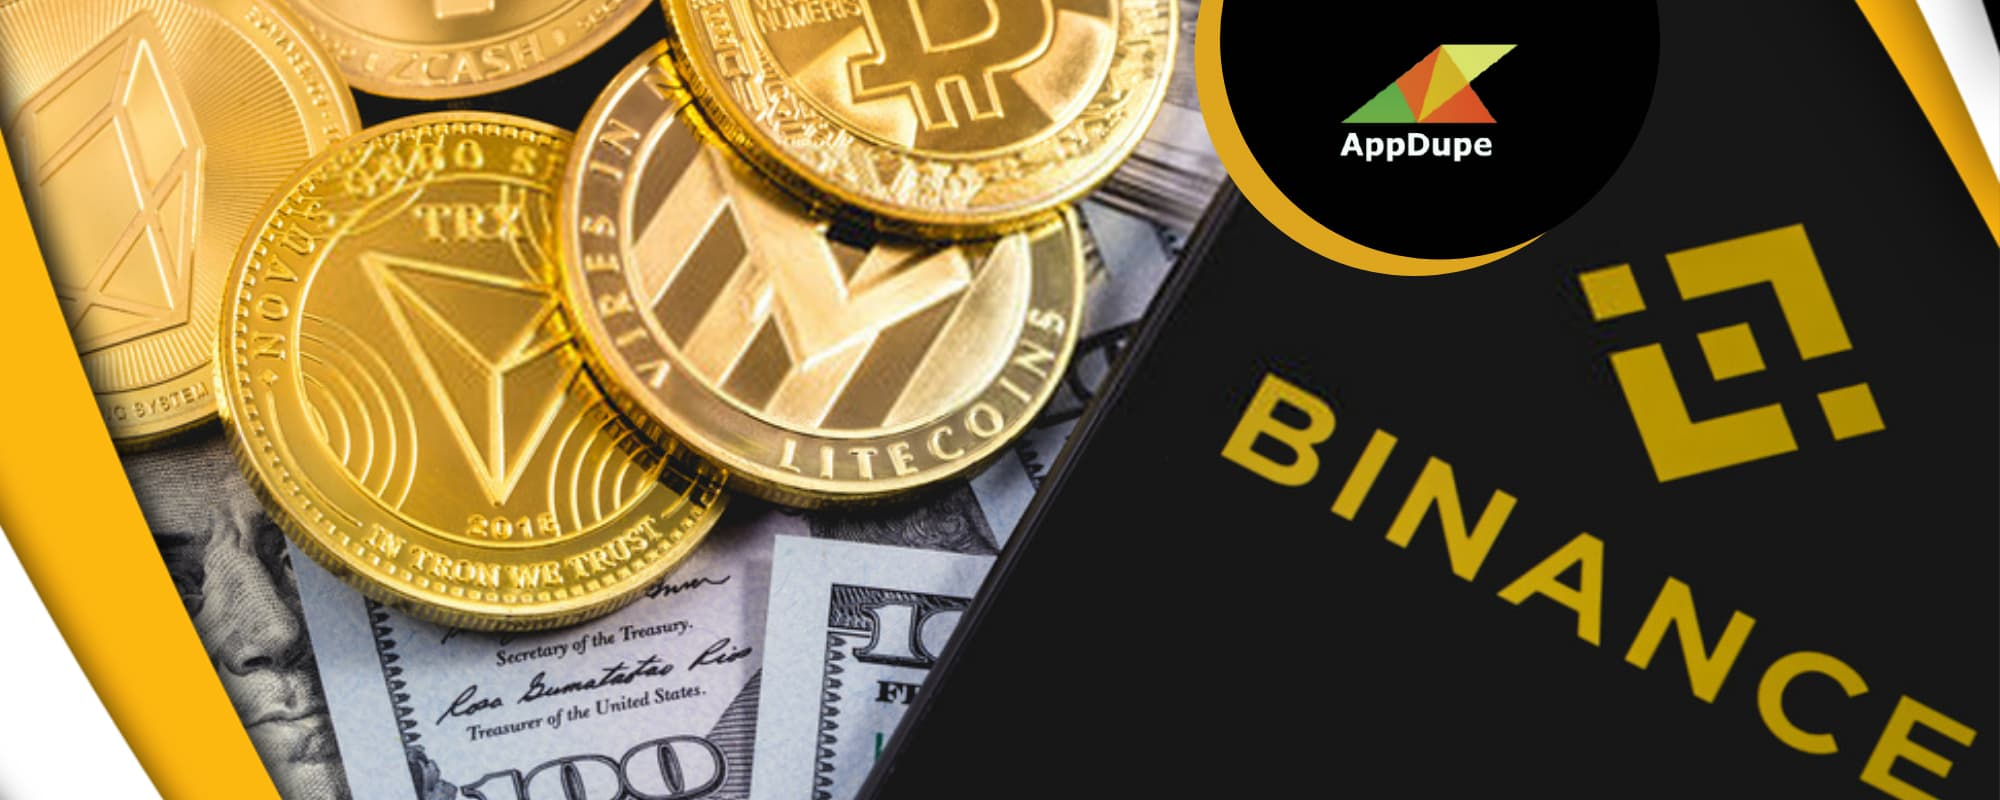 Create your own Cryptocurrency Exchange like Binance   Appdupe